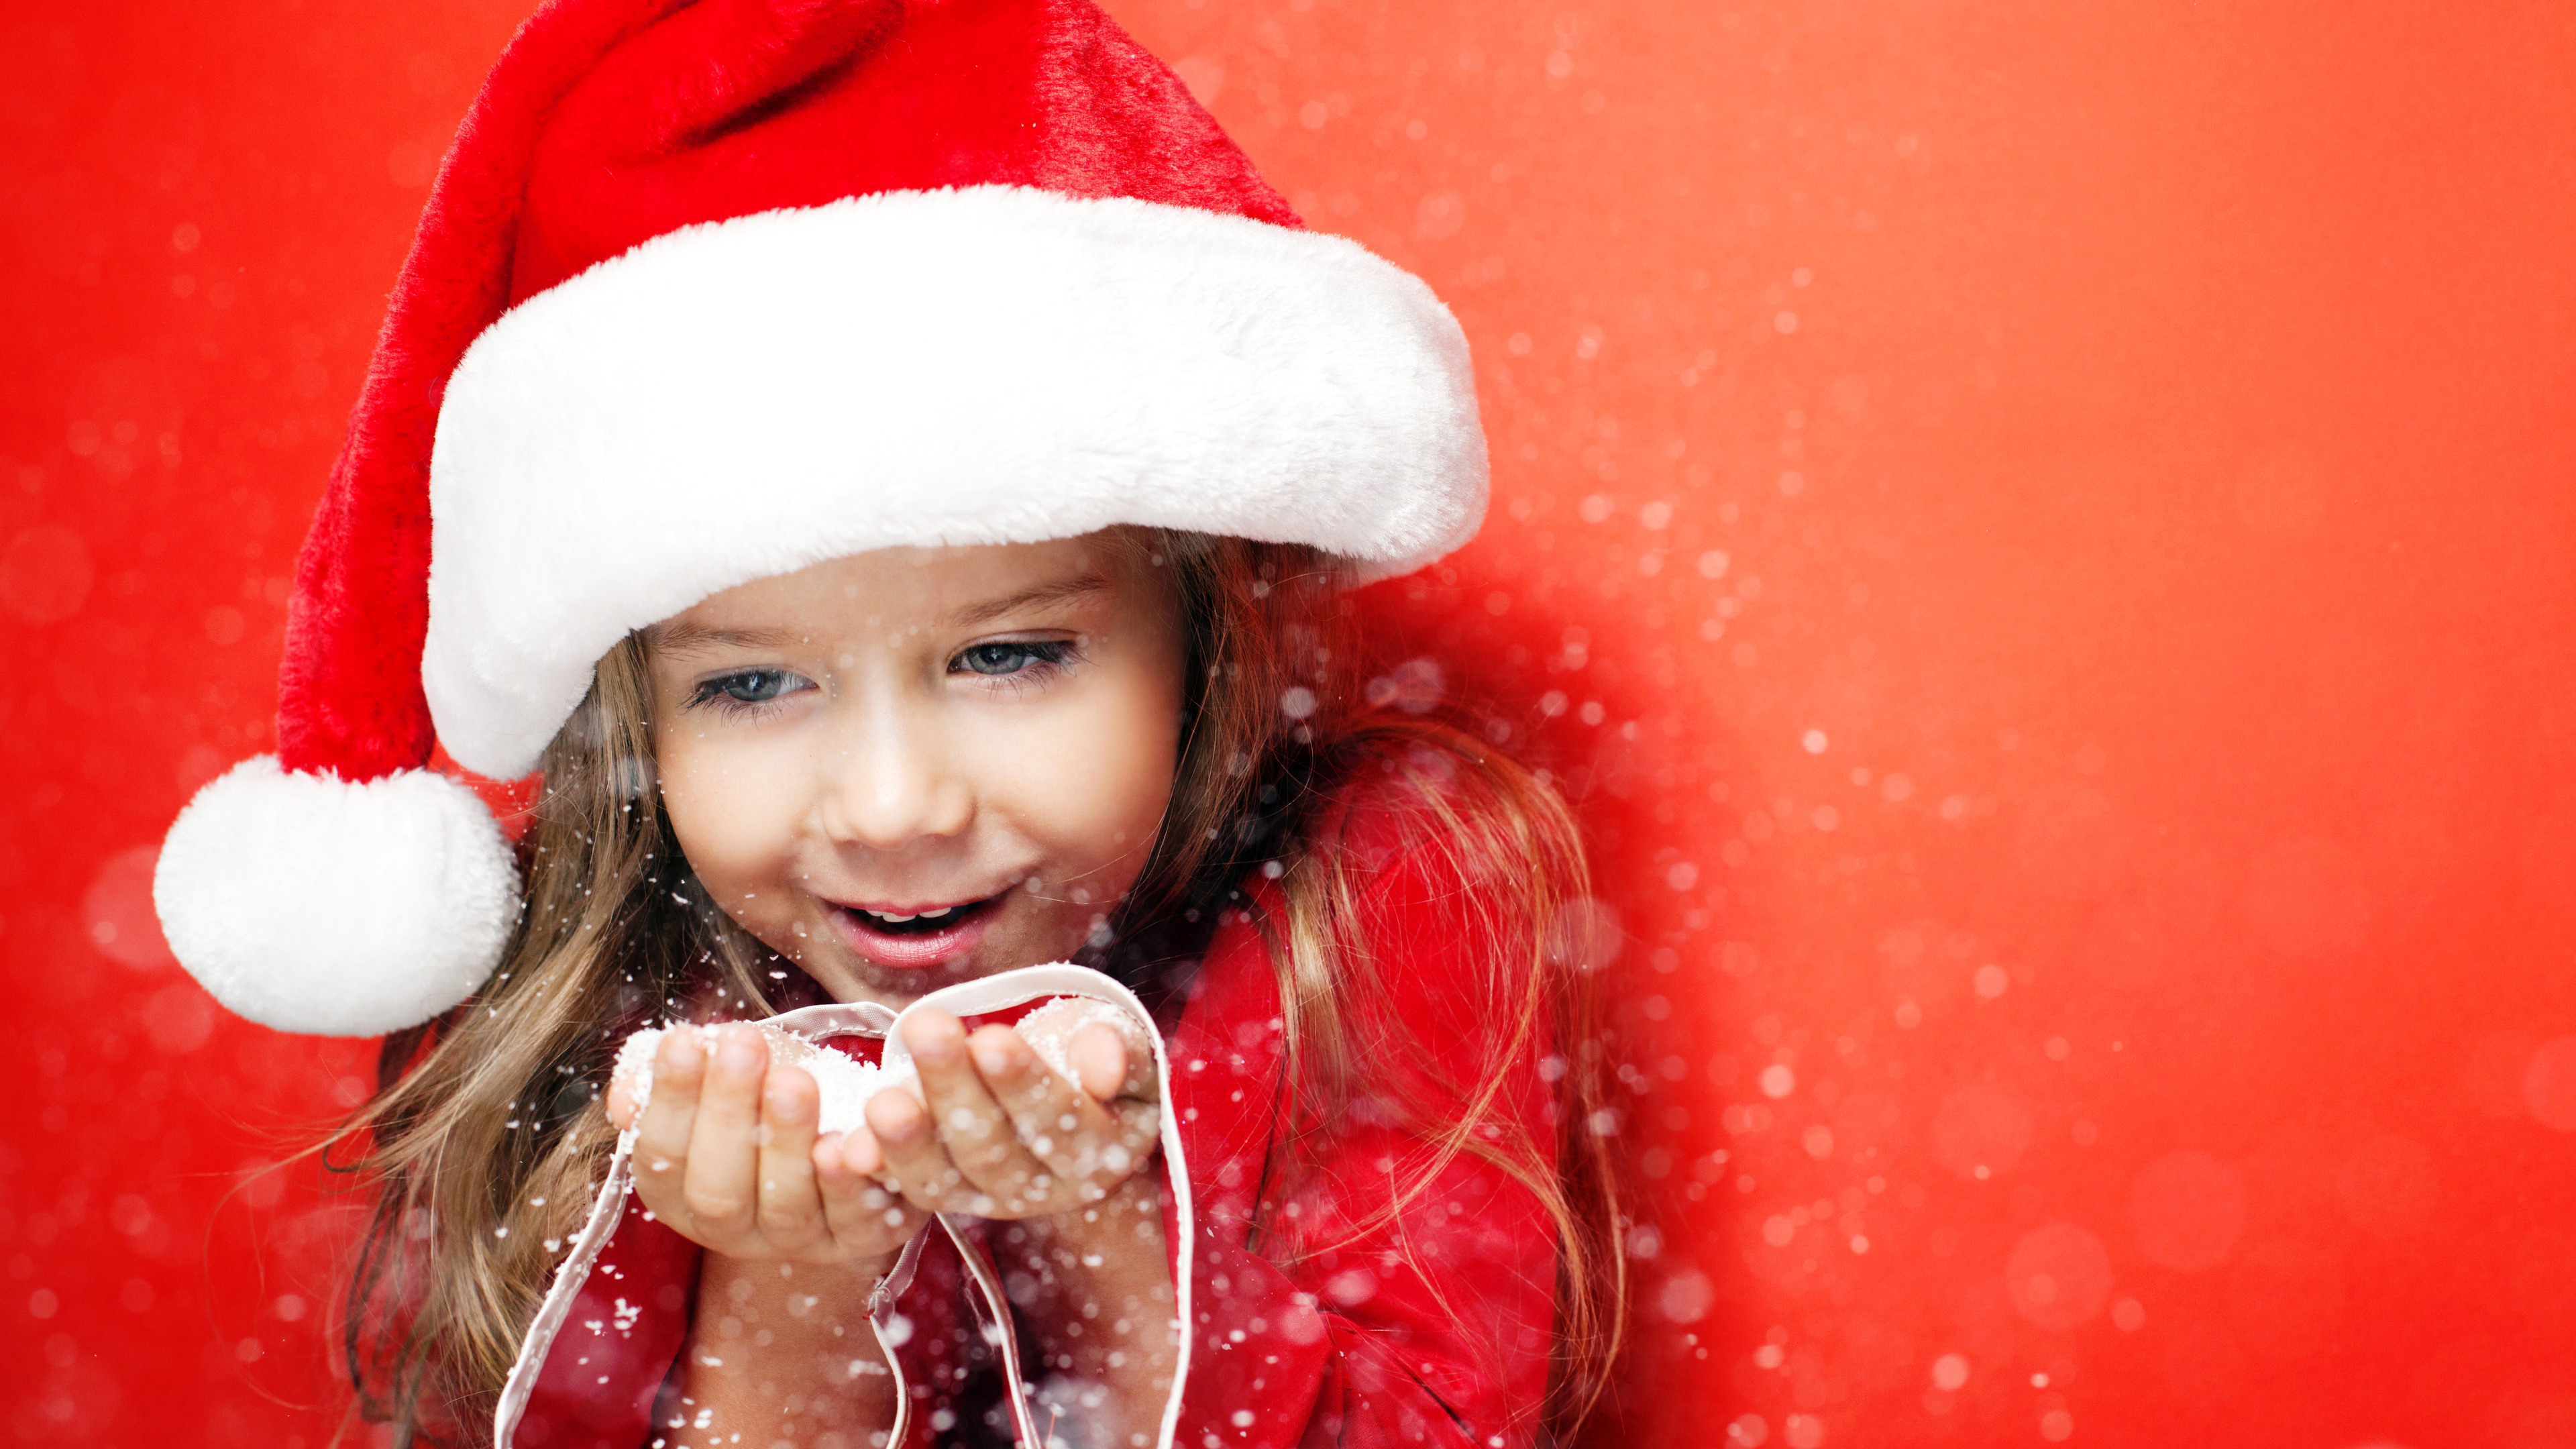 little santa girl christmas 4k 1543946296 - Little Santa Girl Christmas 4k - holidays wallpapers, hd-wallpapers, christmas wallpapers, celebrations wallpapers, 5k wallpapers